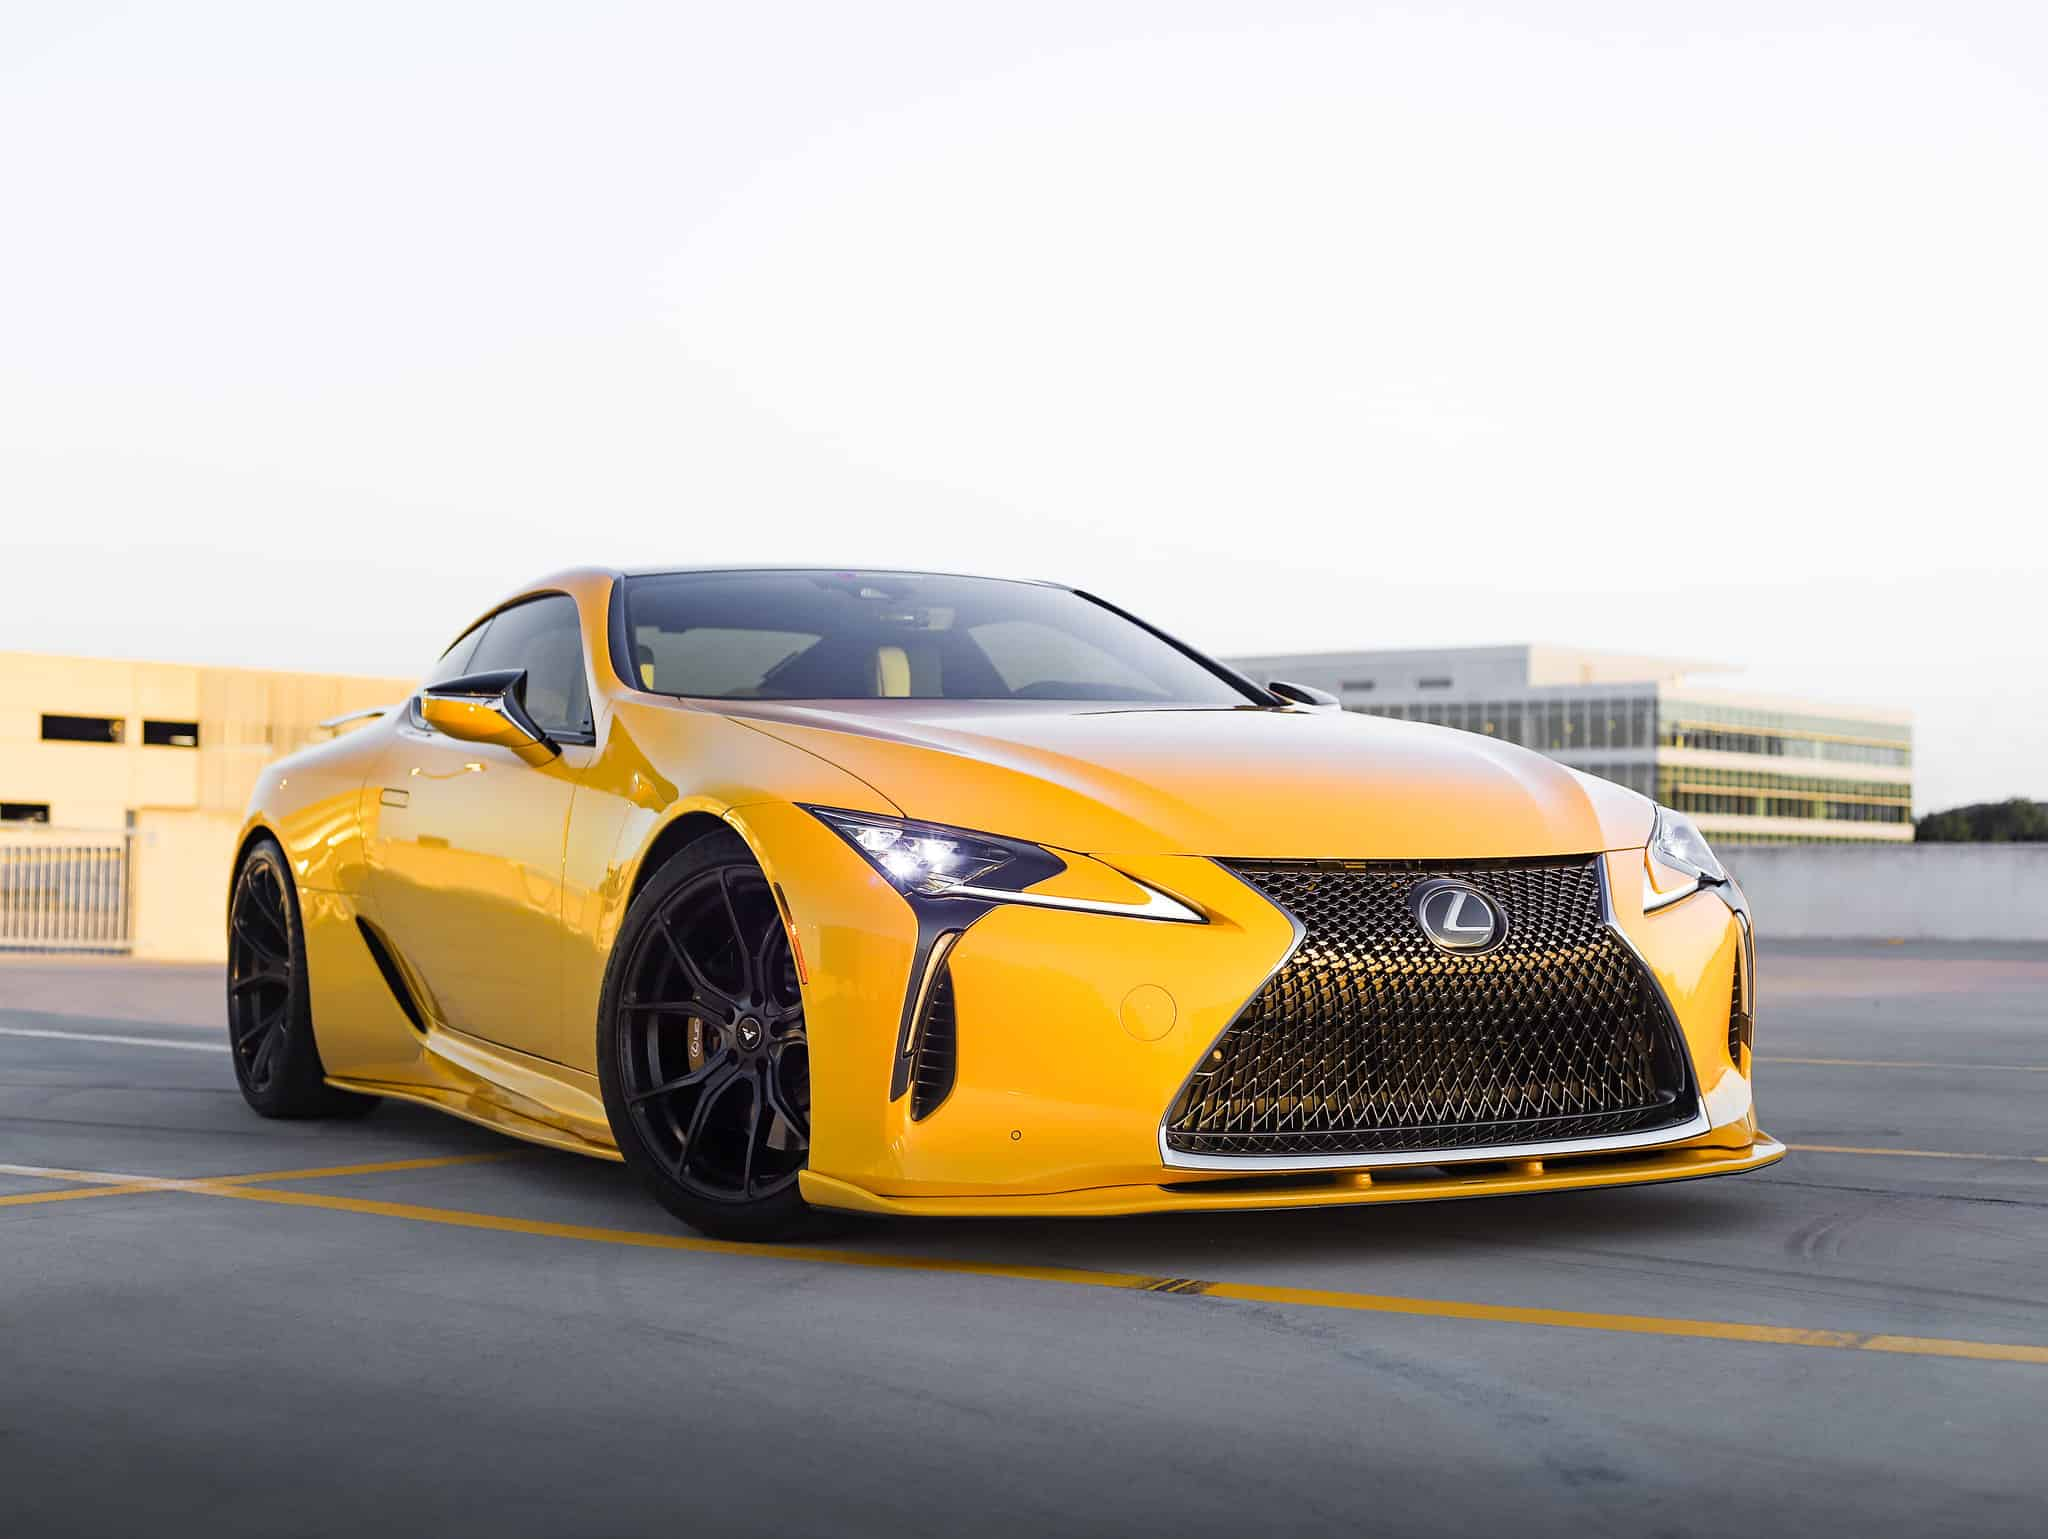 Lexus LC Lexon Body Kit & Vorsteiner Wheels